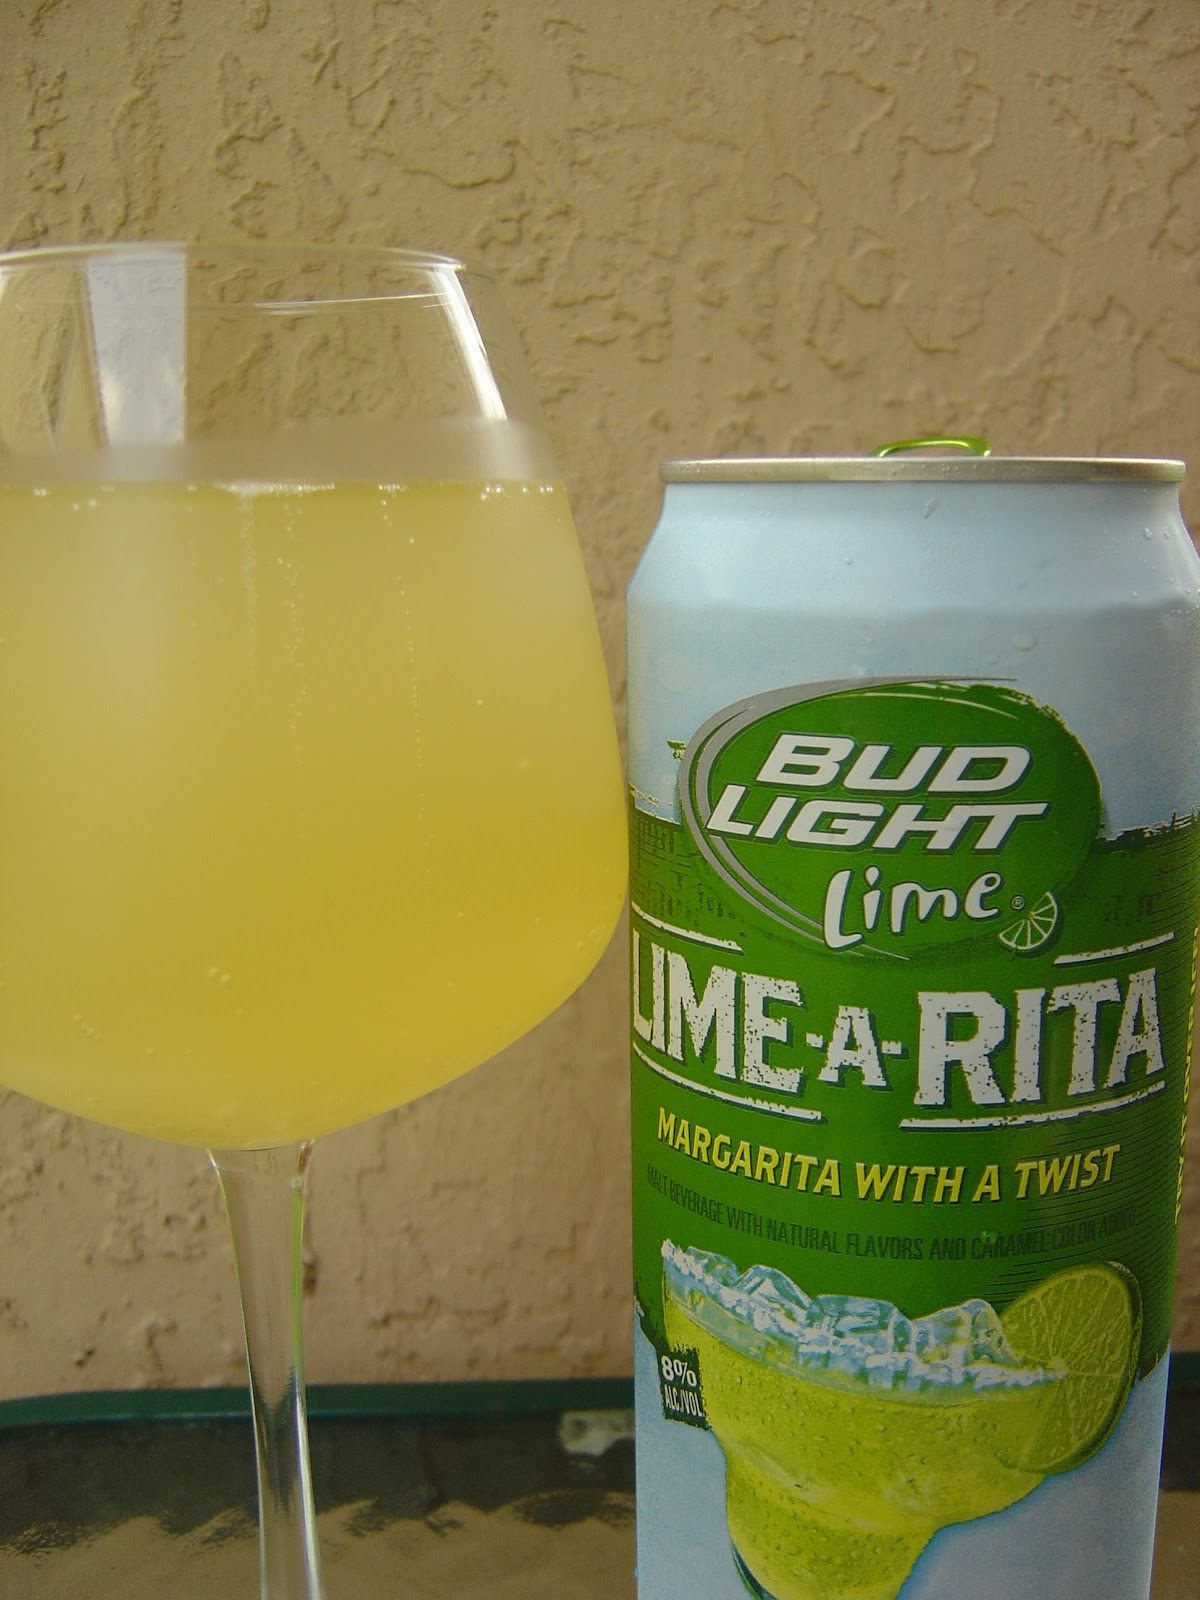 Bud Light Lime Lime A Rita